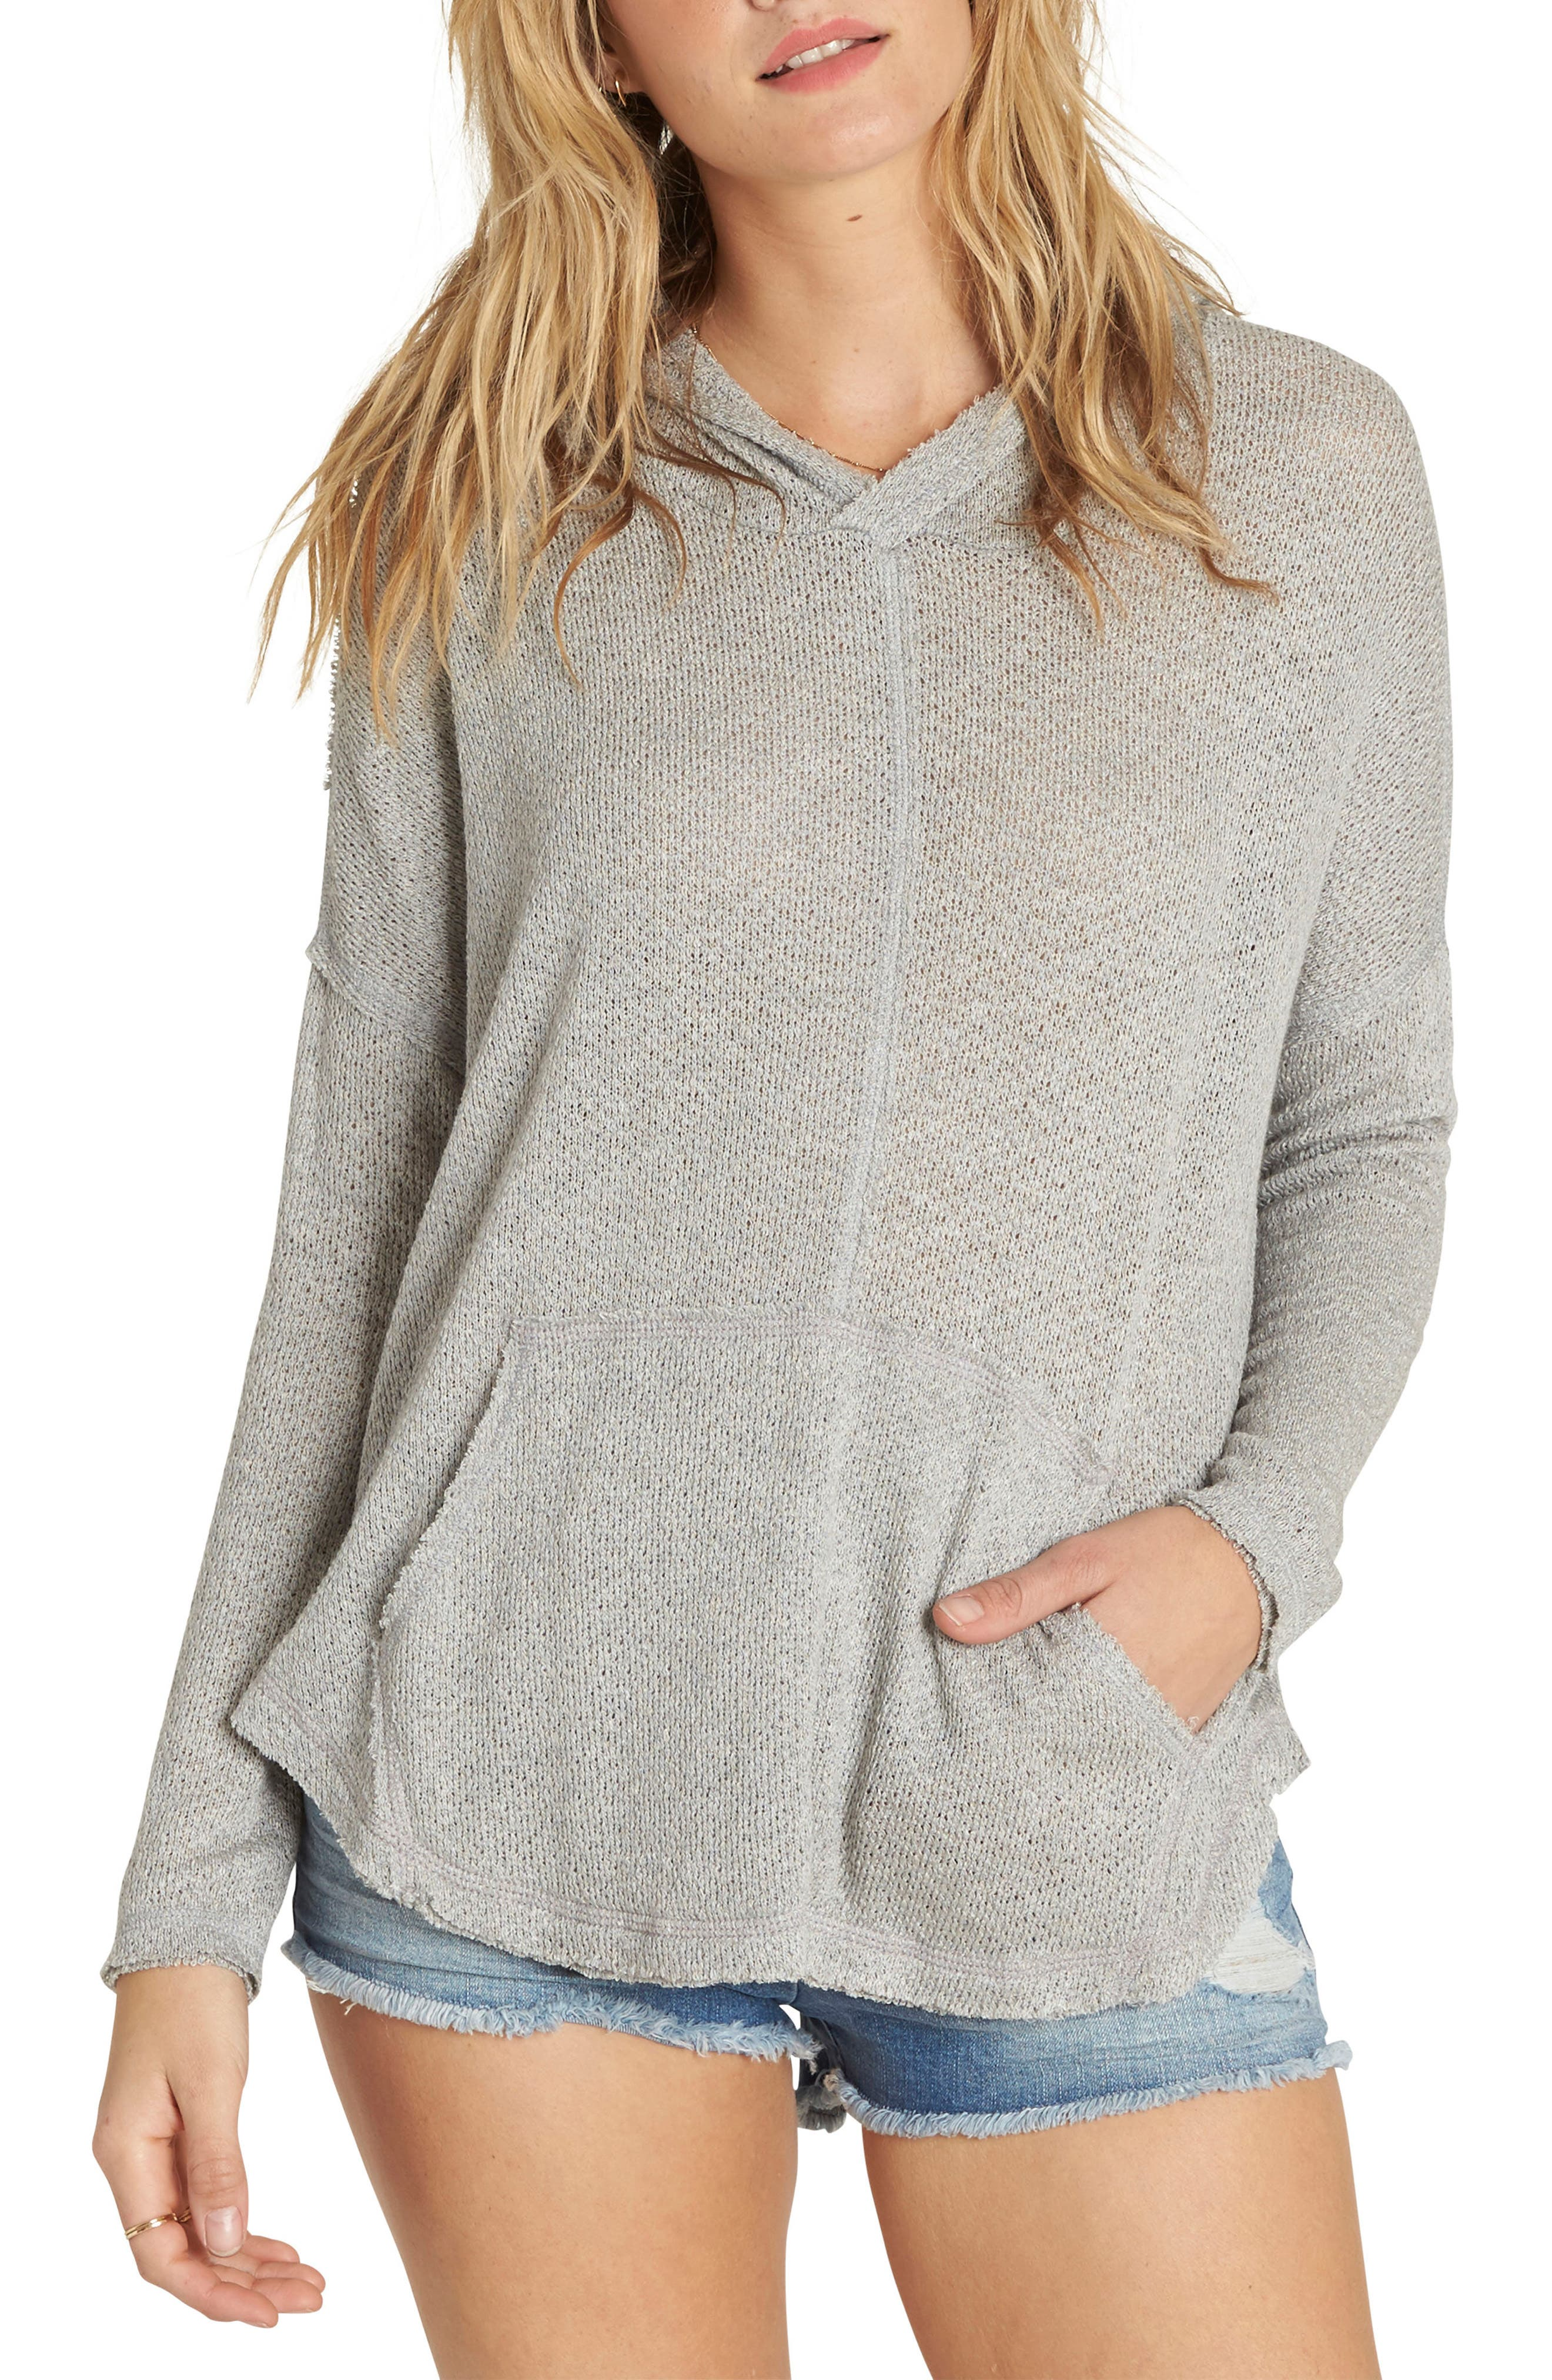 These Days Hooded Top,                             Main thumbnail 1, color,                             Dark Athletic Grey